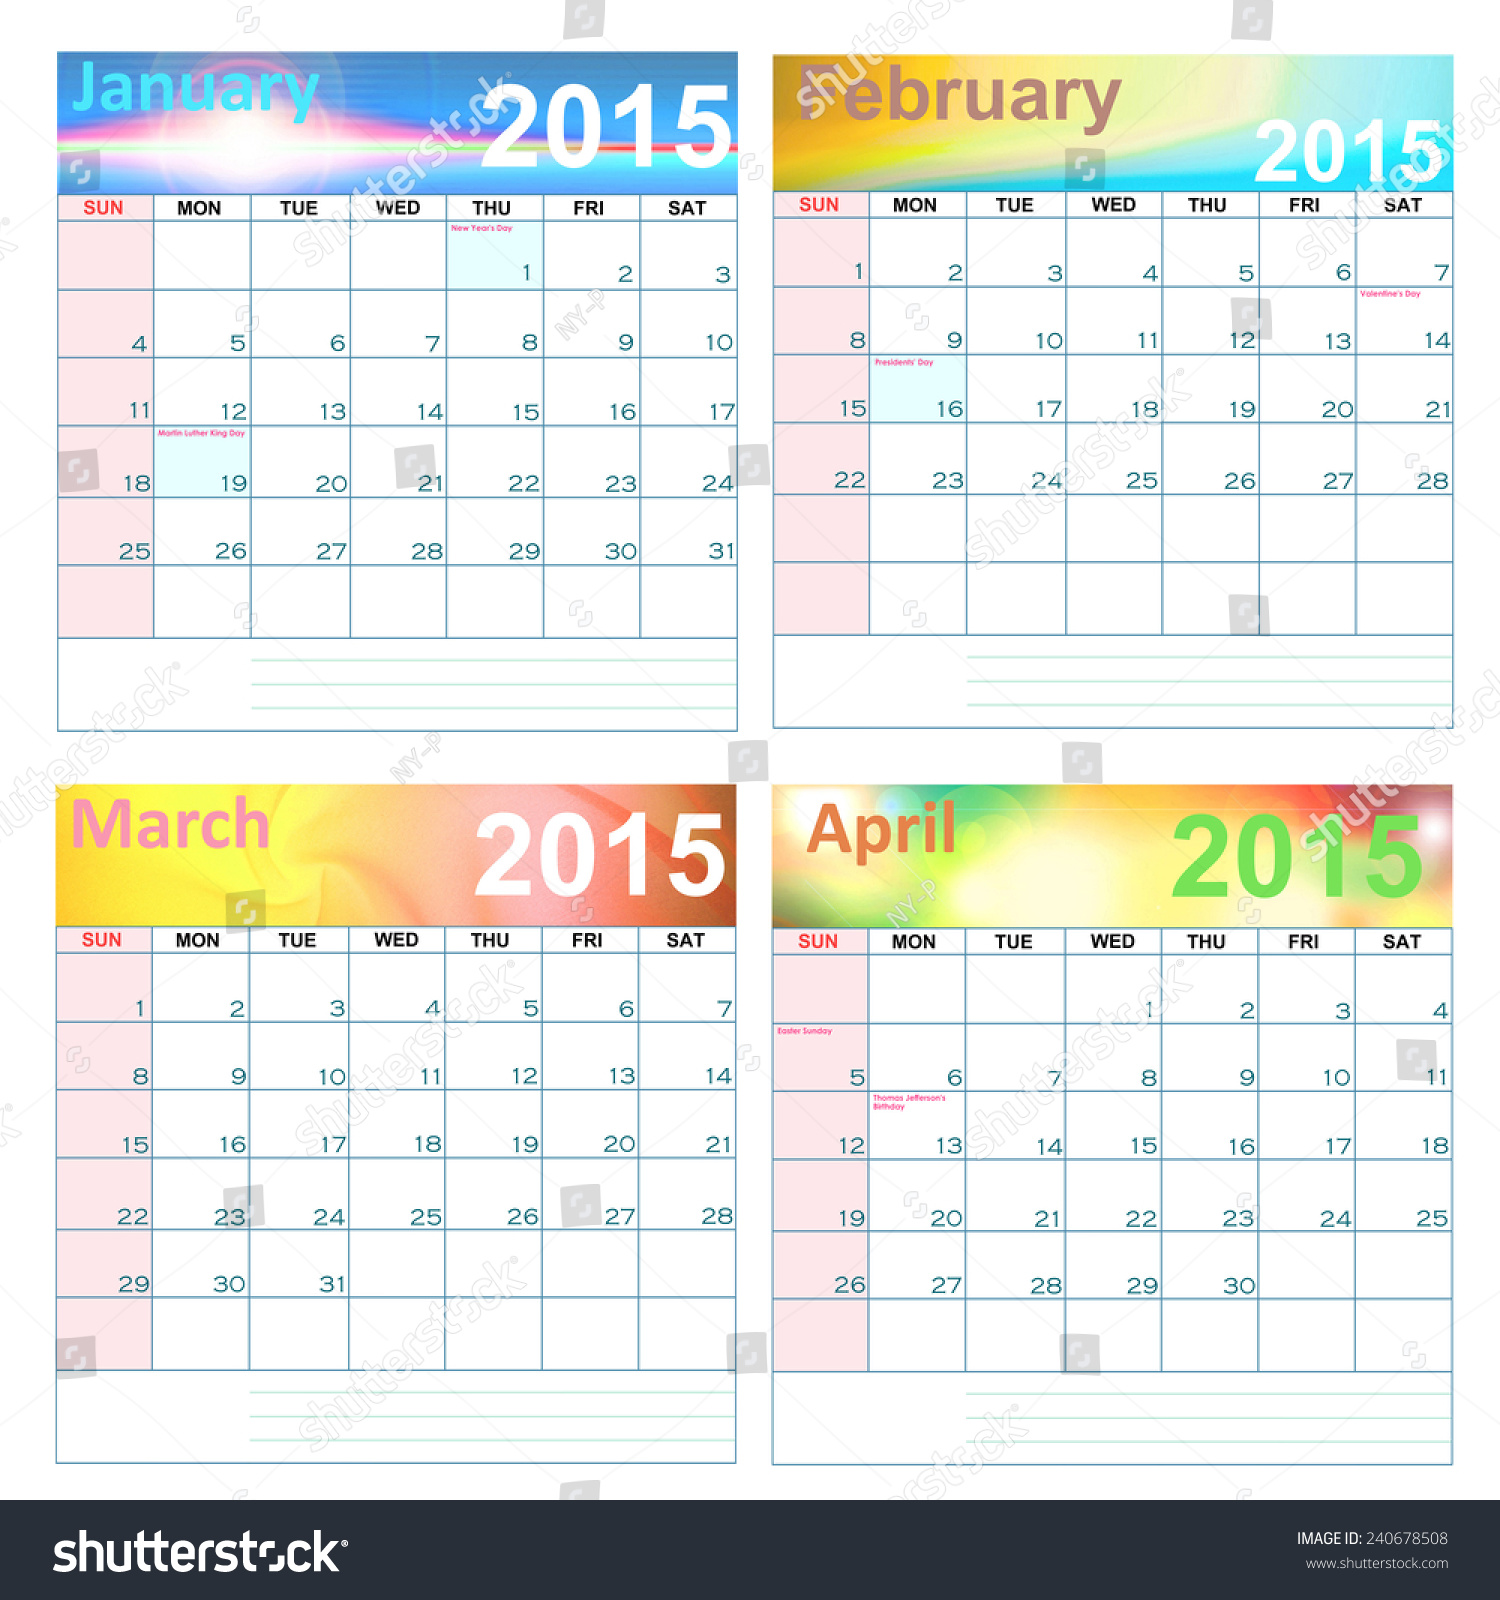 Calendar Monthly Observances : Jewish holidays and observances pictures to pin on